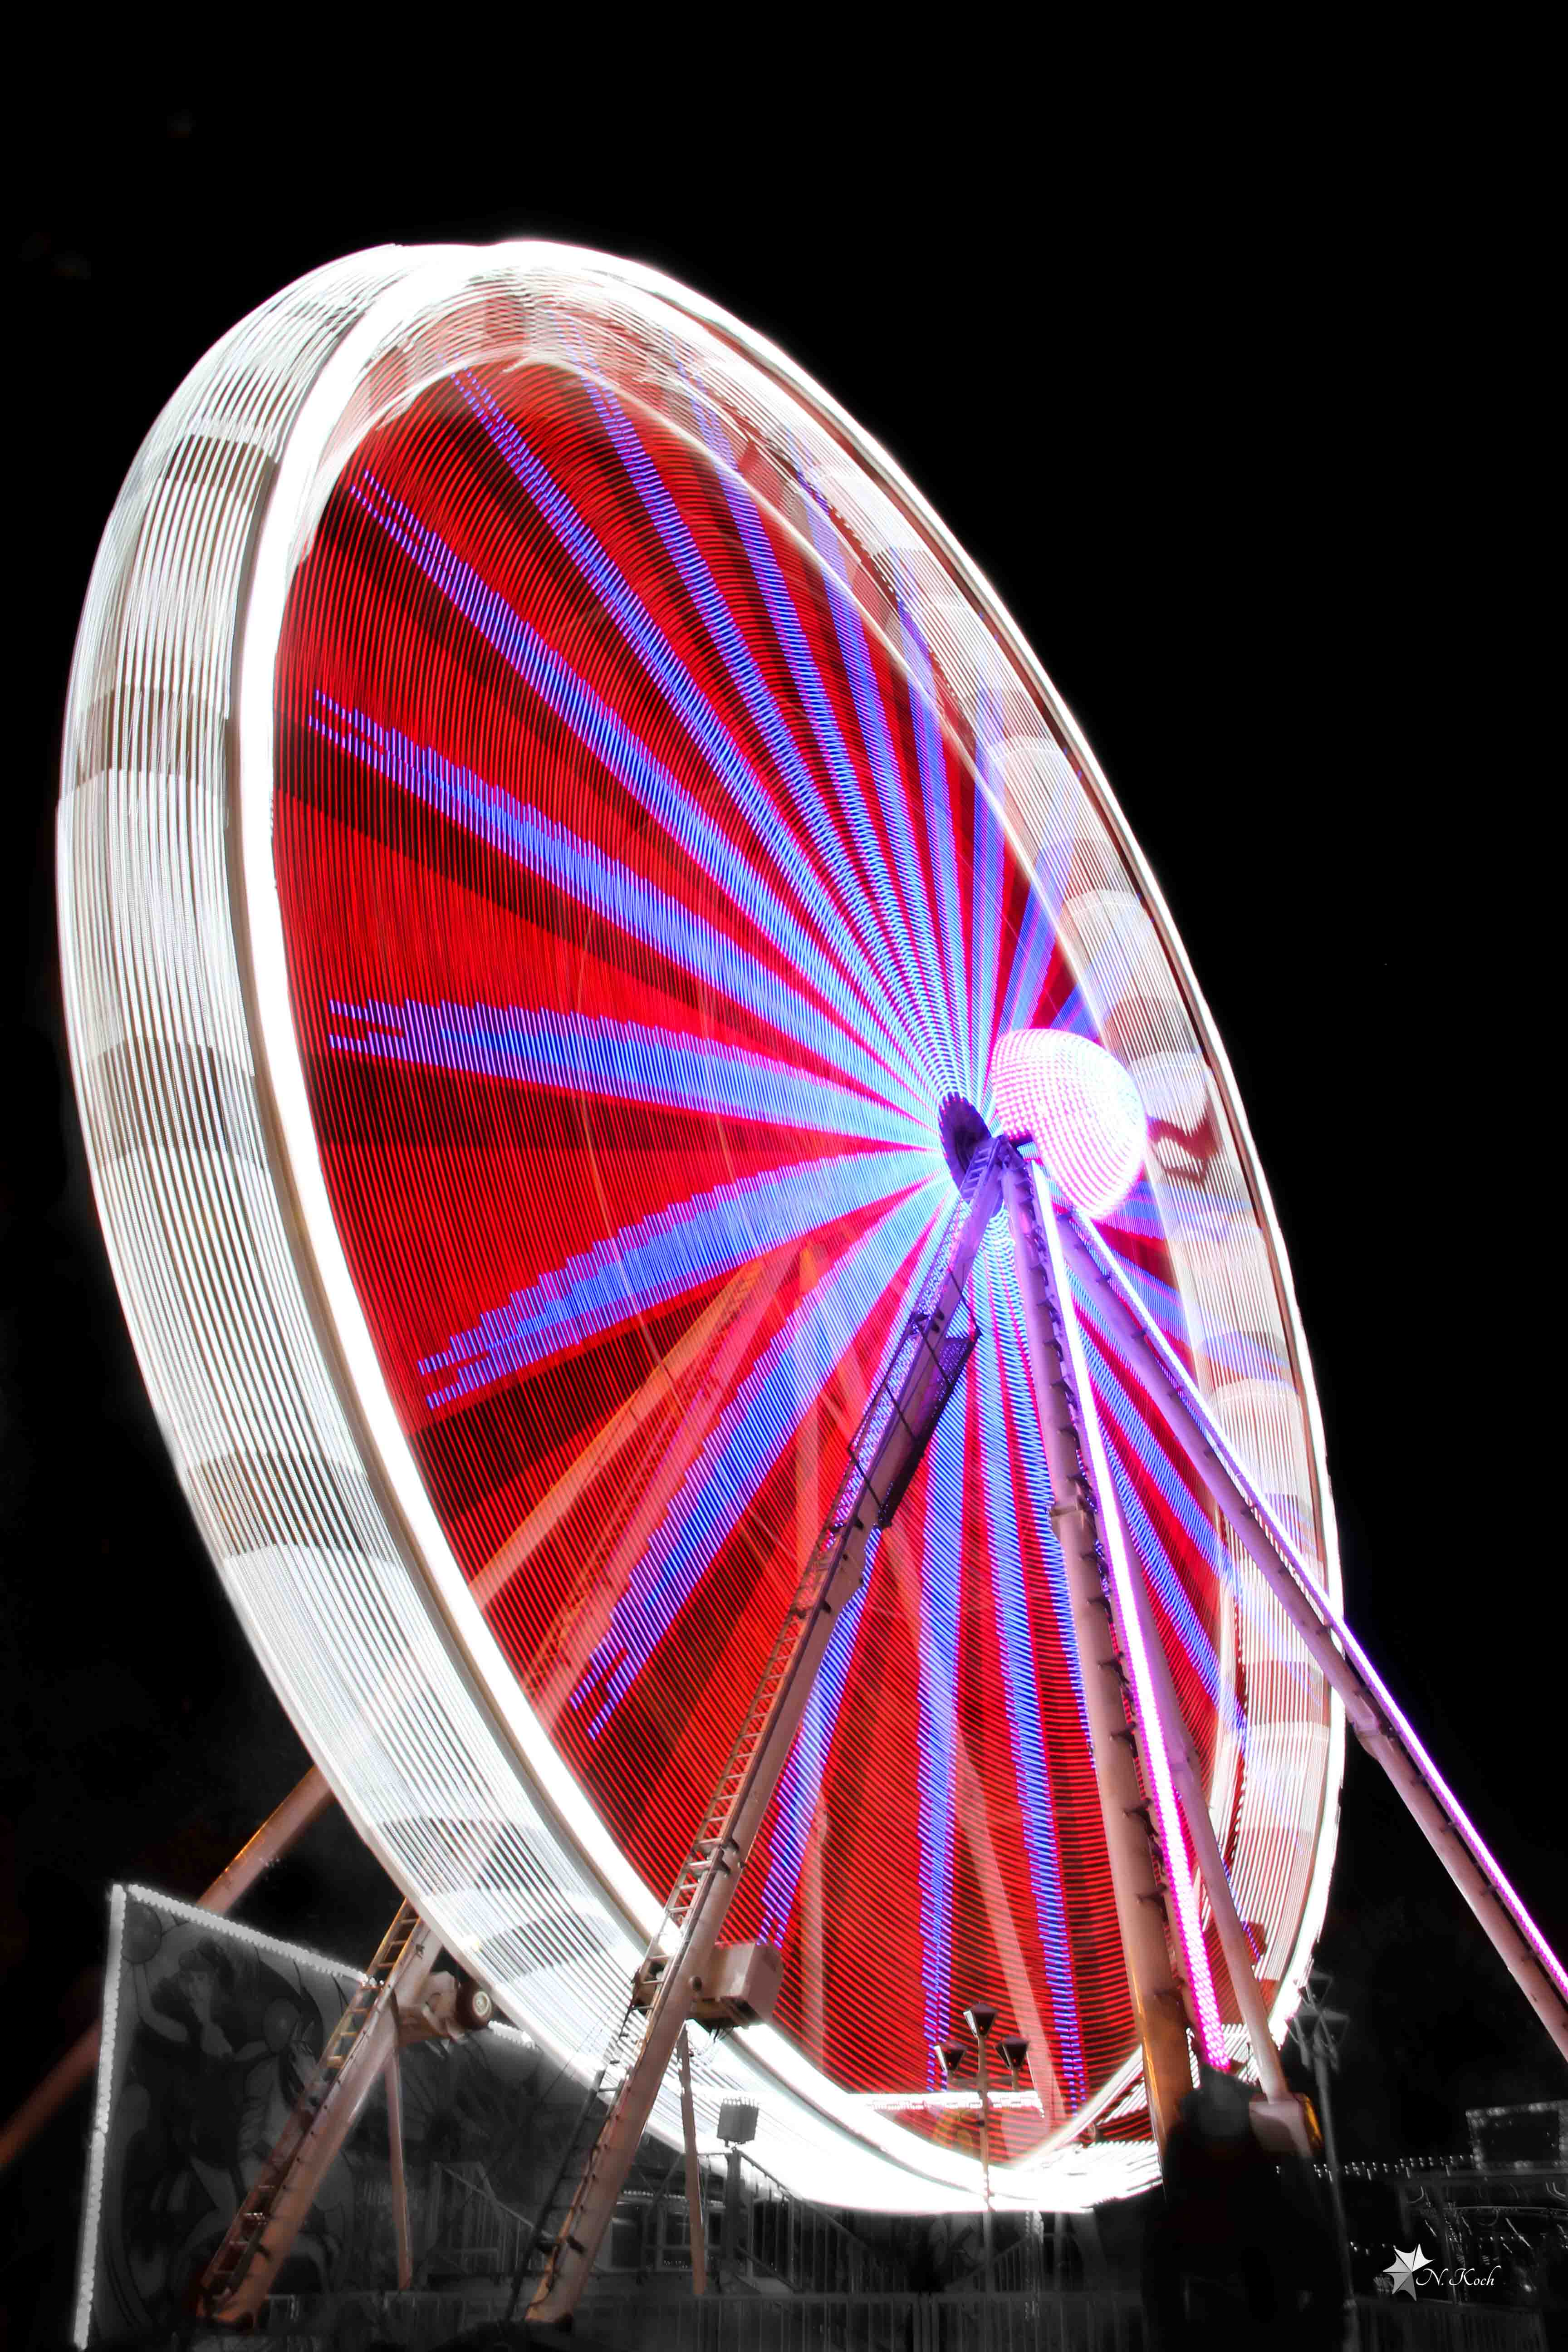 2014, Ferris wheel | Karlsruhe at night